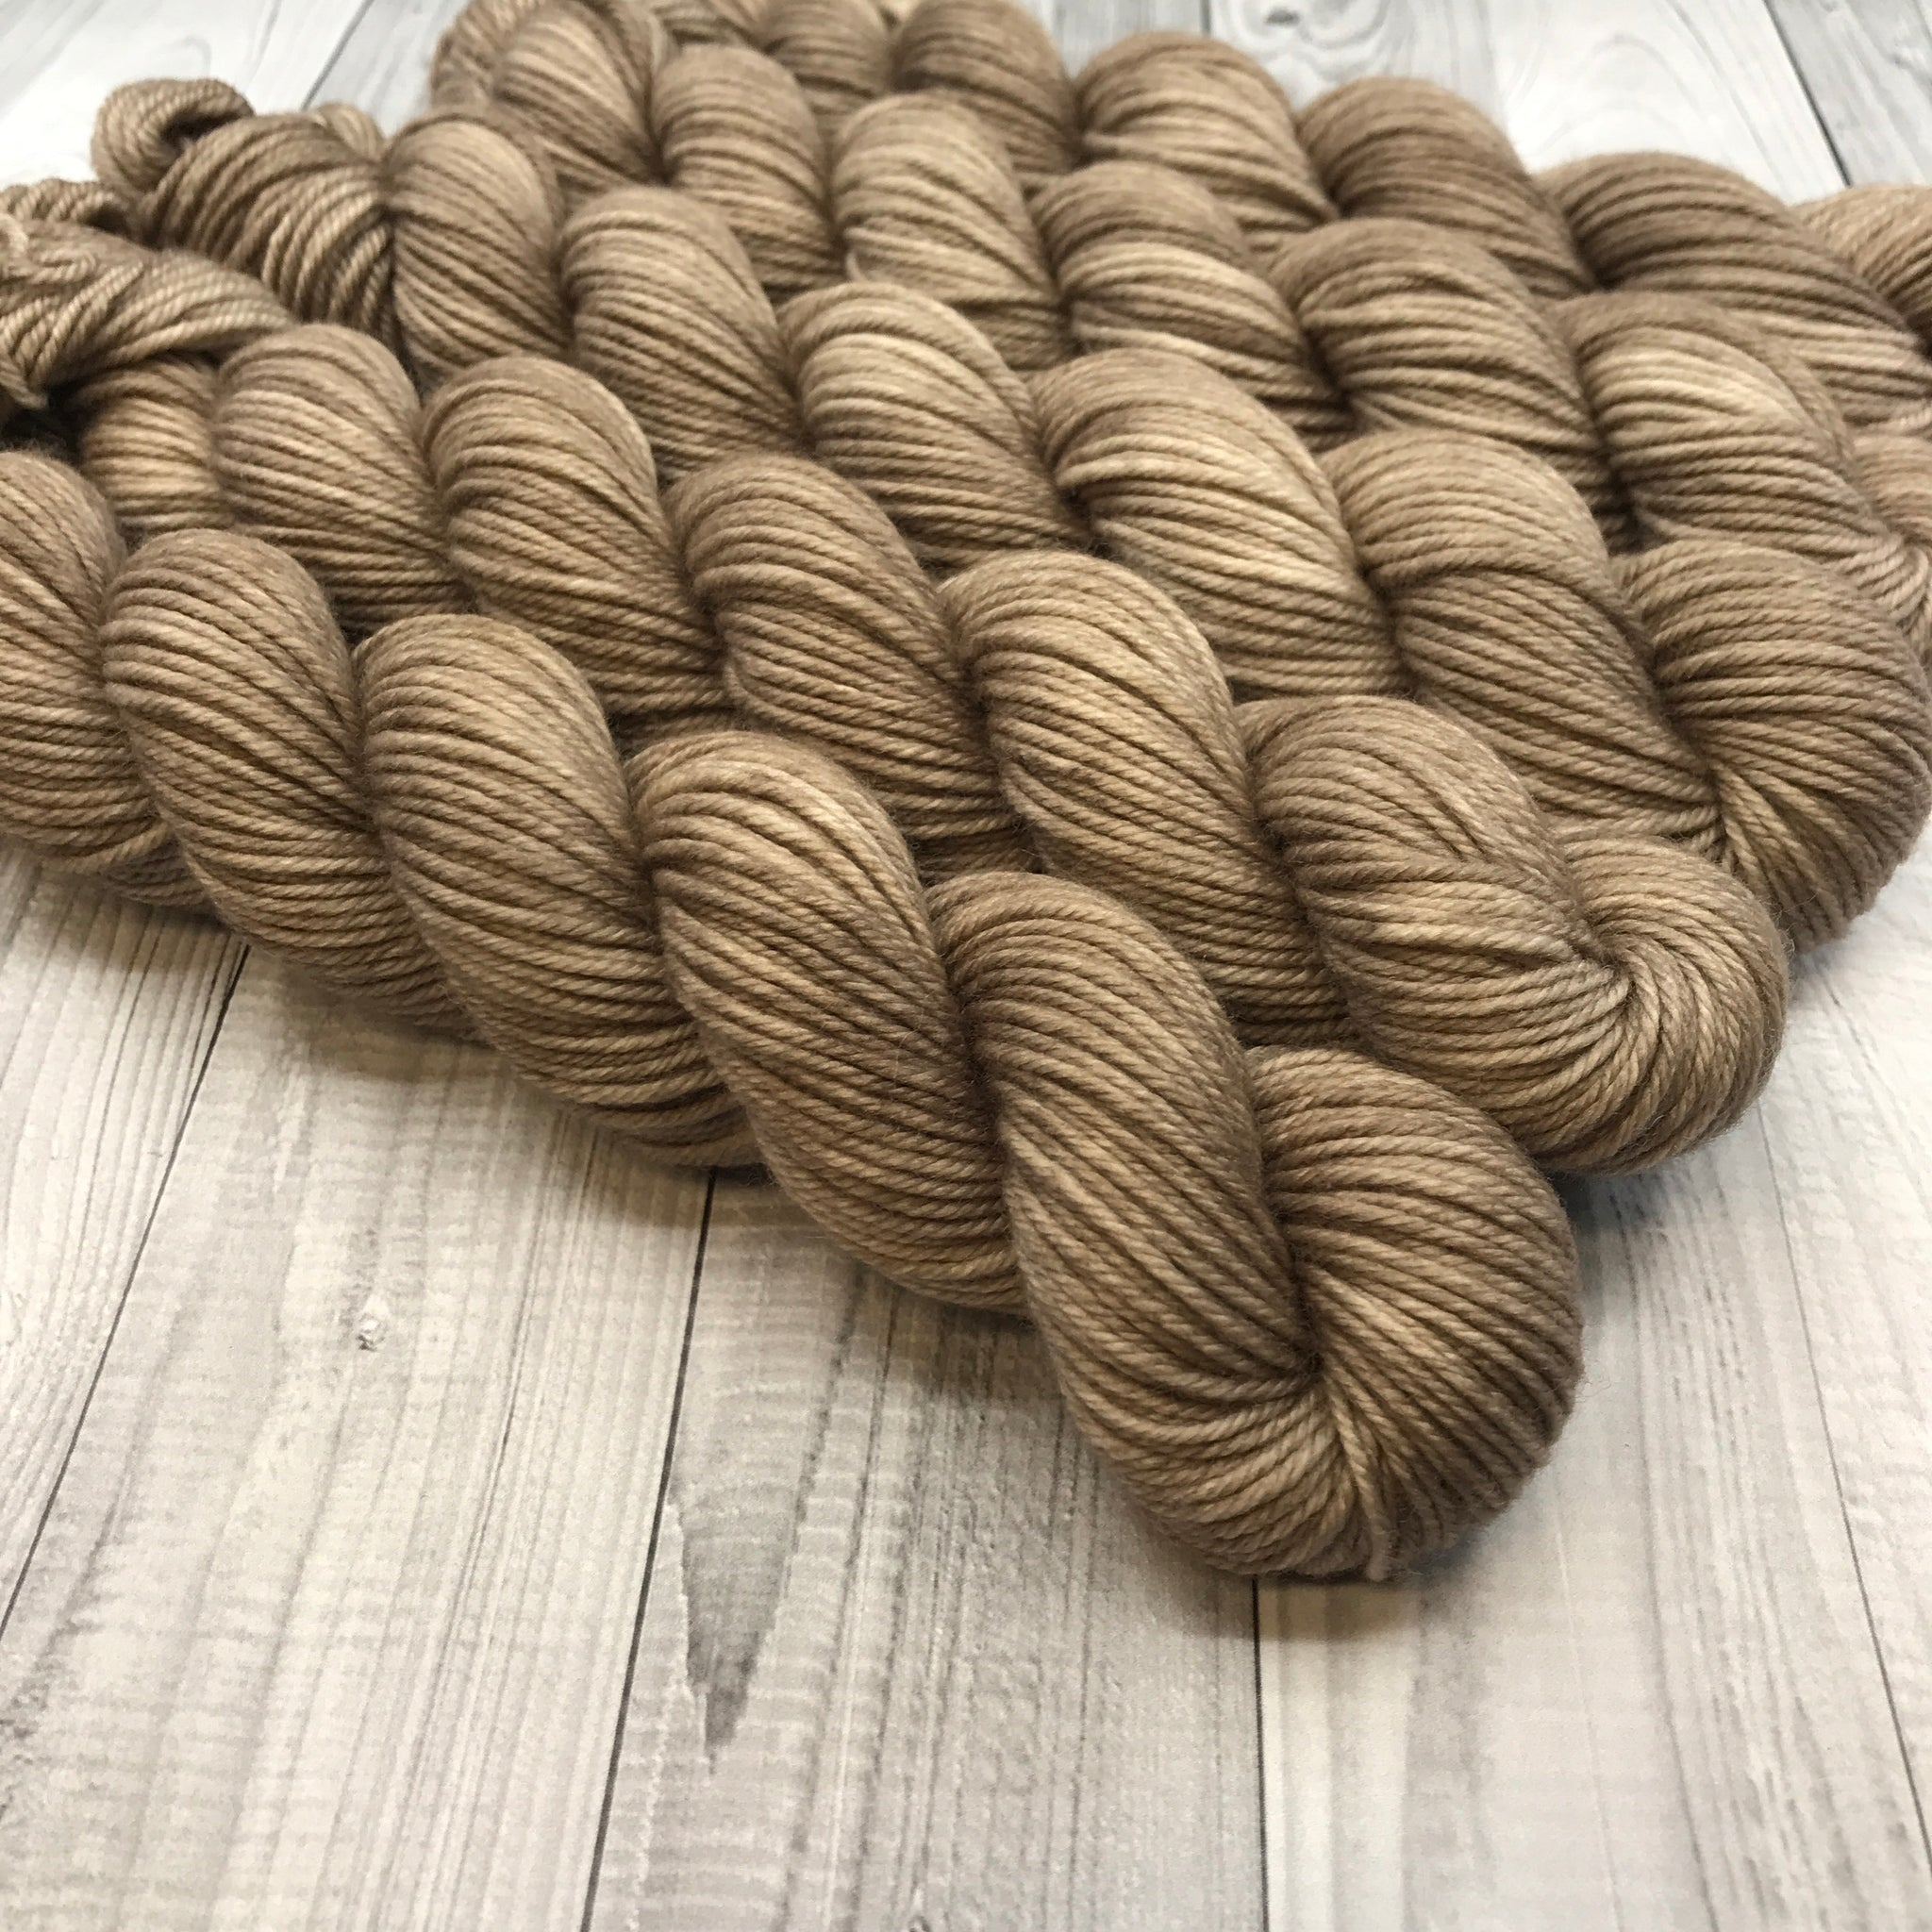 Trevor Morgan DK - Mini Skein- Cream In Coffee